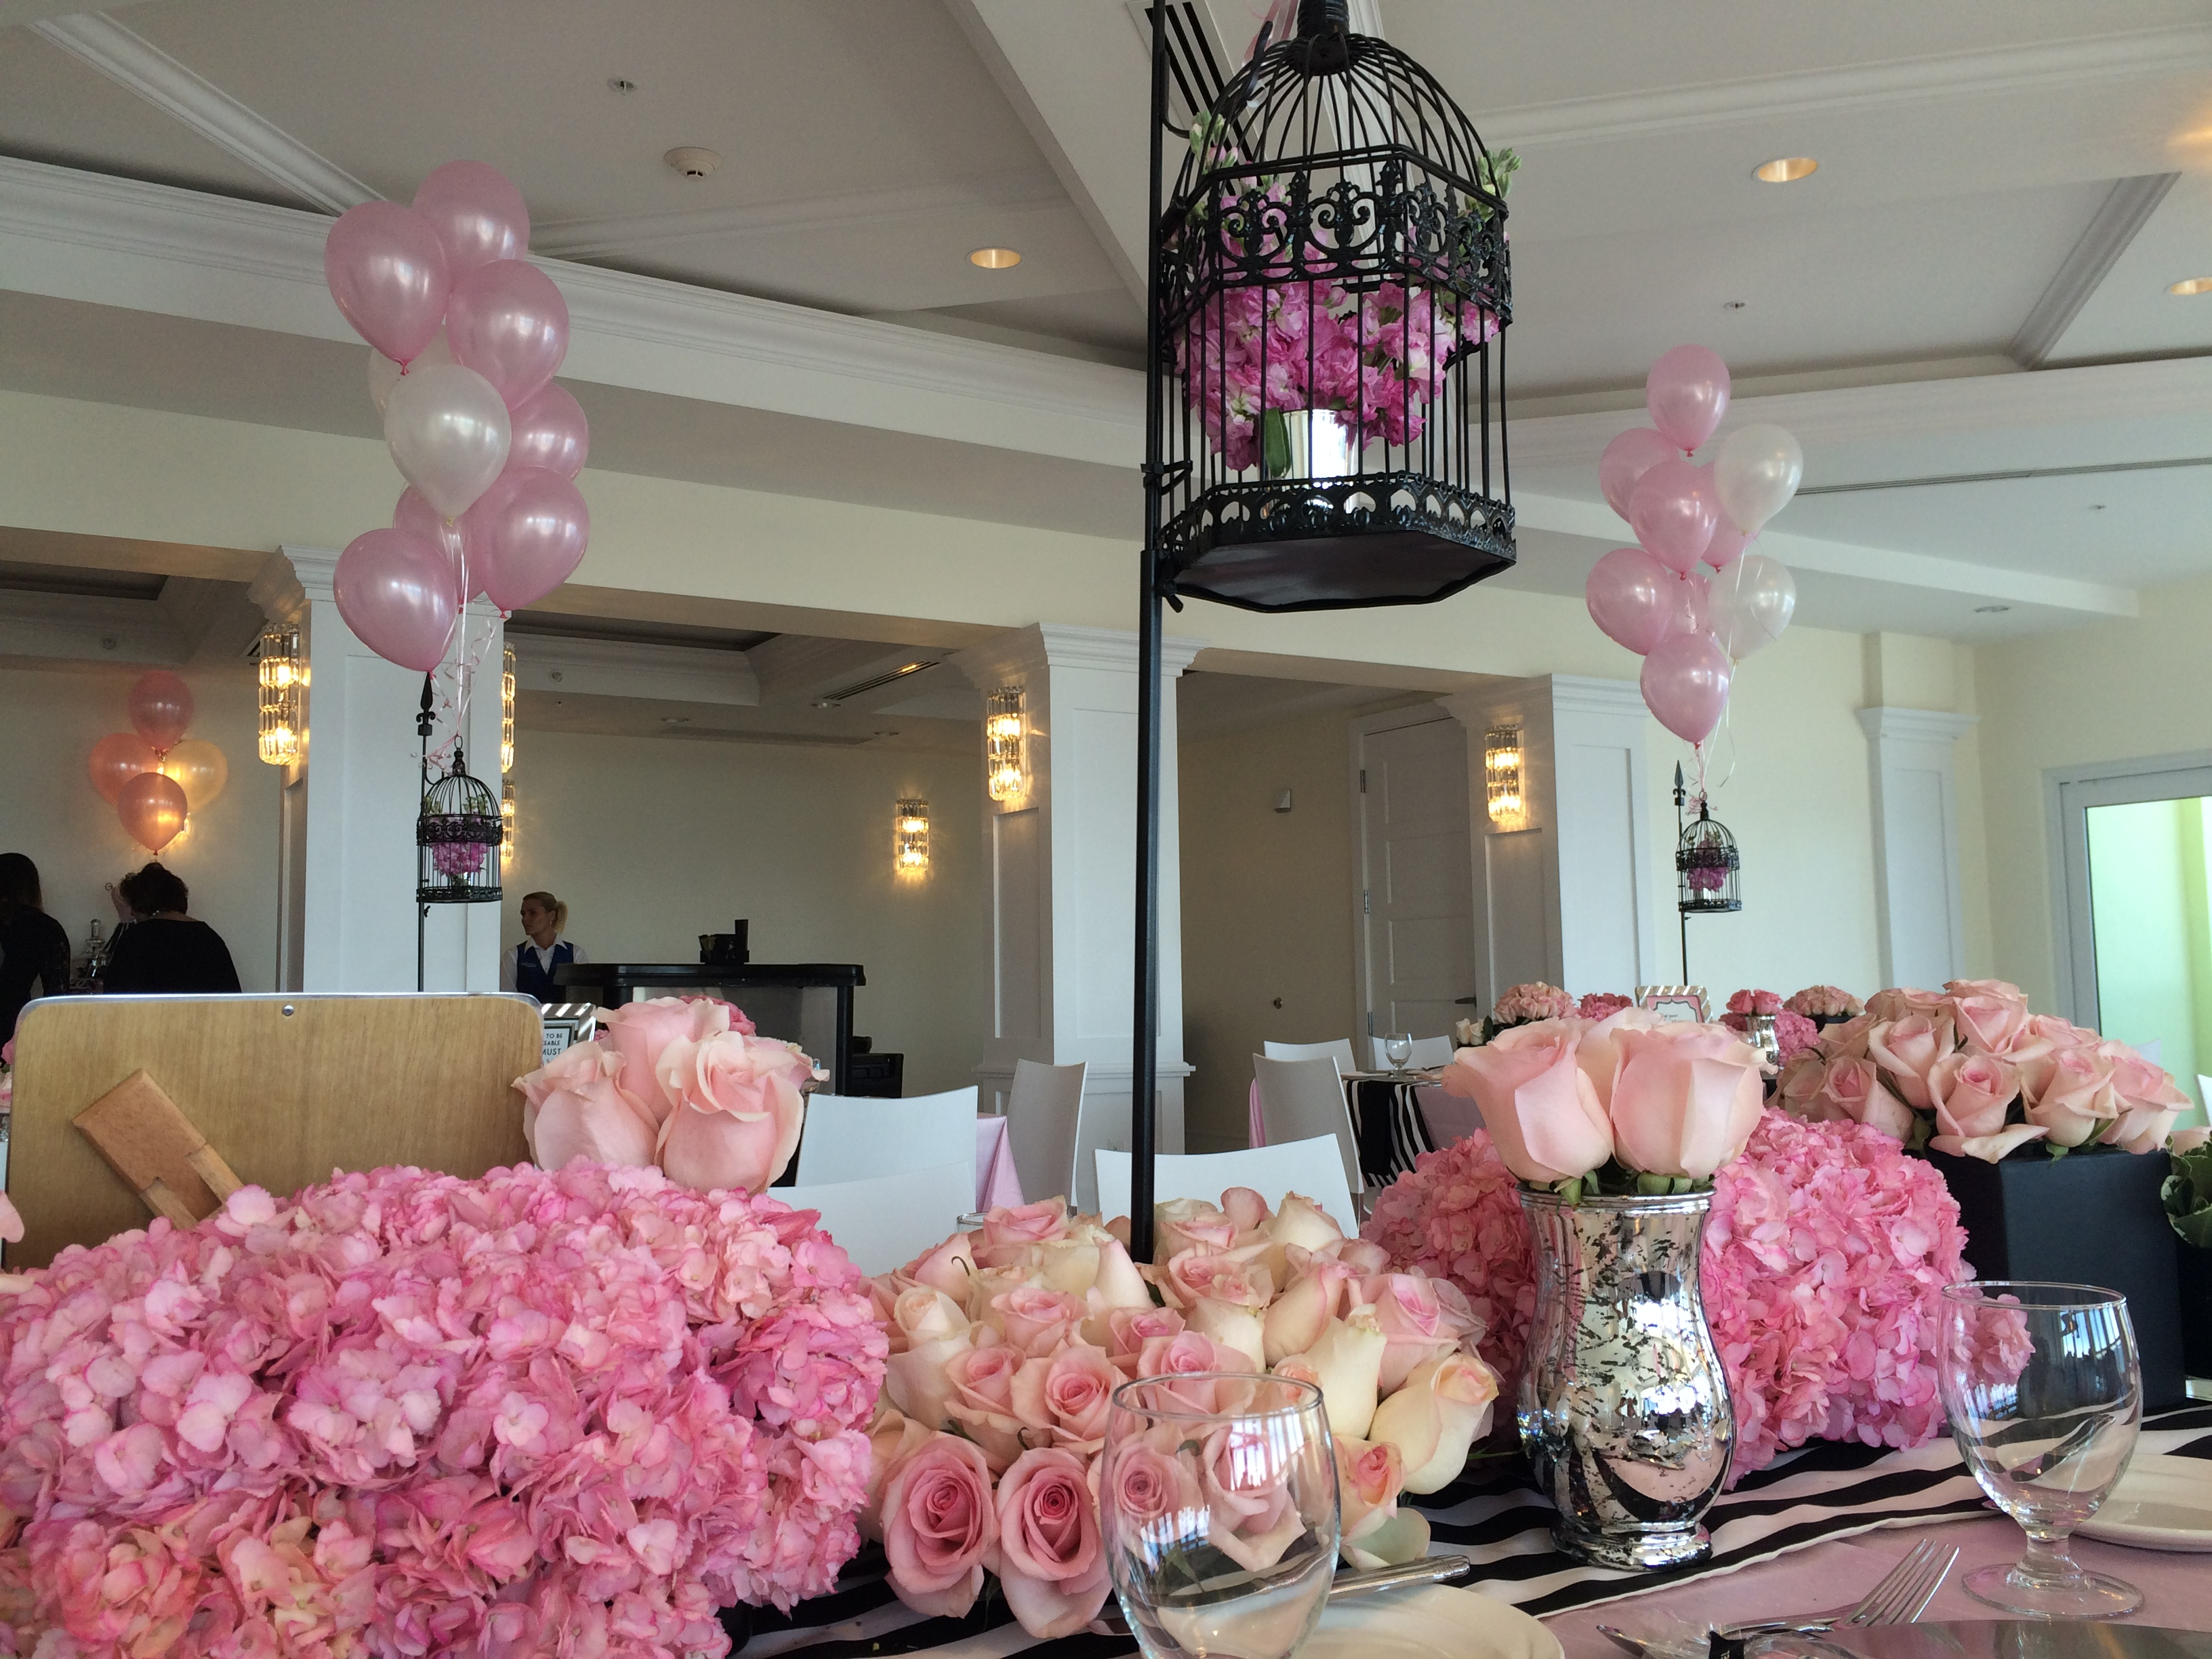 Bridal Shower flowers and balloons